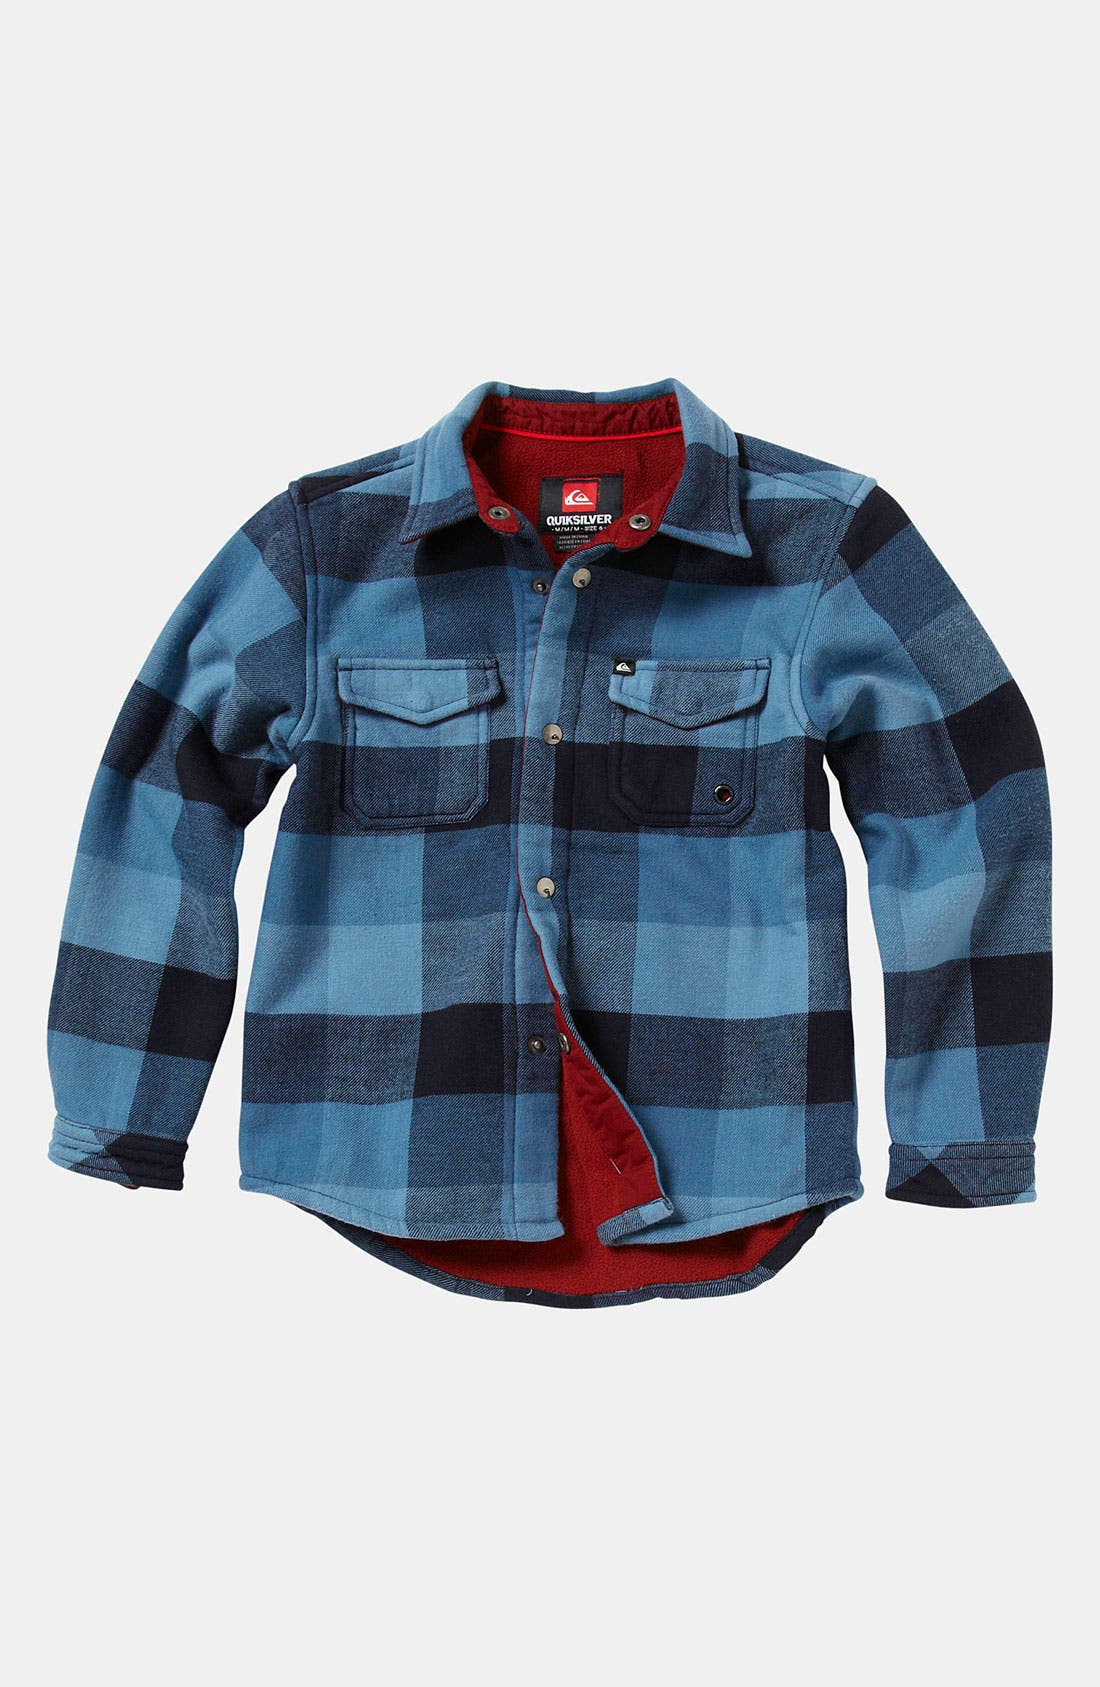 Alternate Image 1 Selected - Quiksilver 'Coffee Crusher' Flannel Shirt (Toddler)